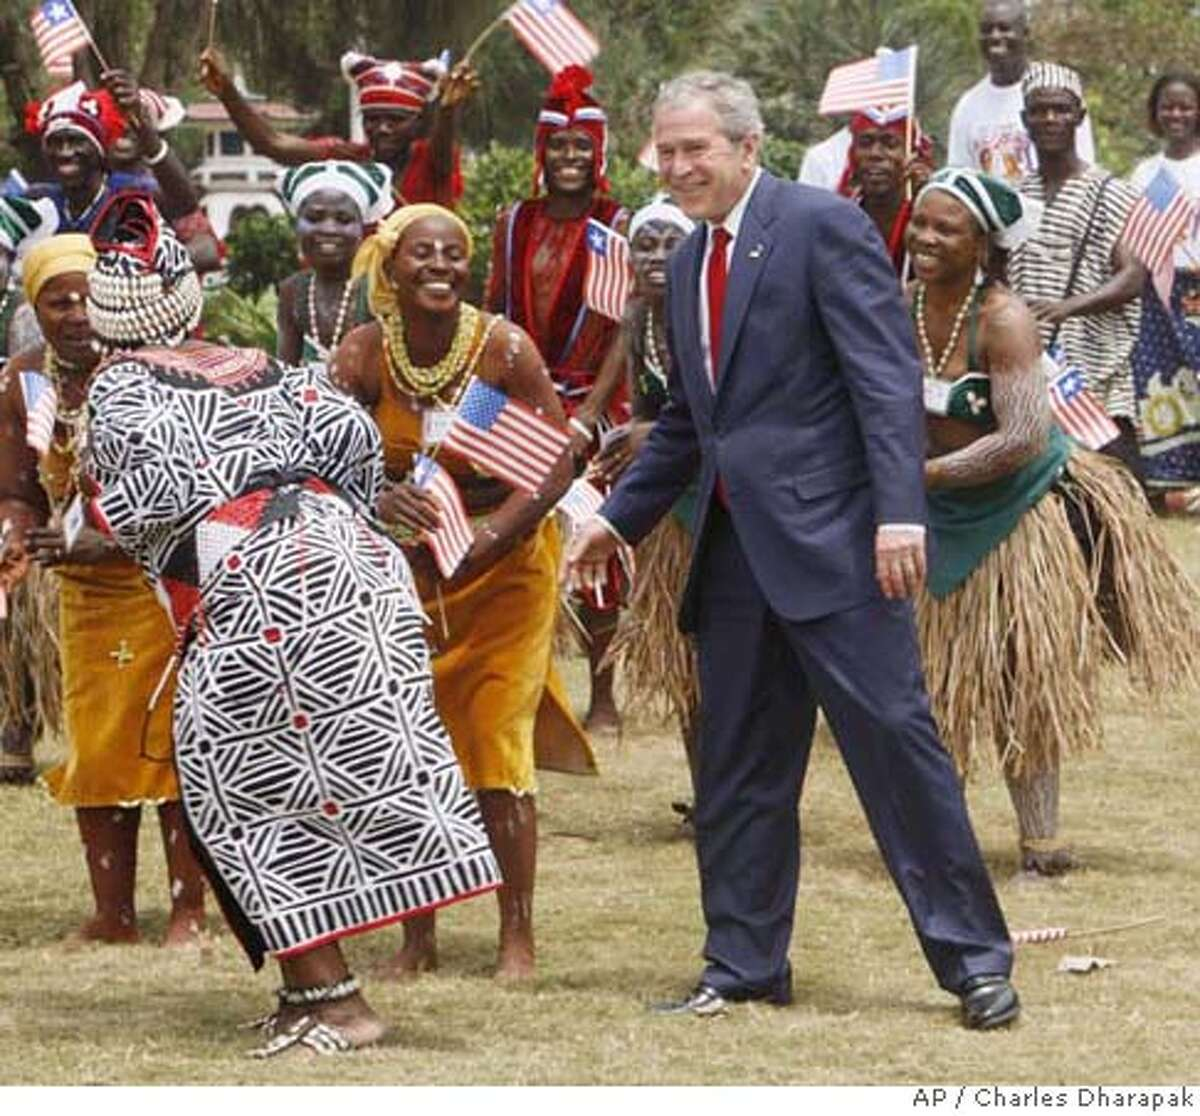 President Bush is pictured with traditional Liberian dancers before a lunch, Thursday, Feb. 21, 2008, in Monrovia, Liberia. (AP Photo/Charles Dharapak)